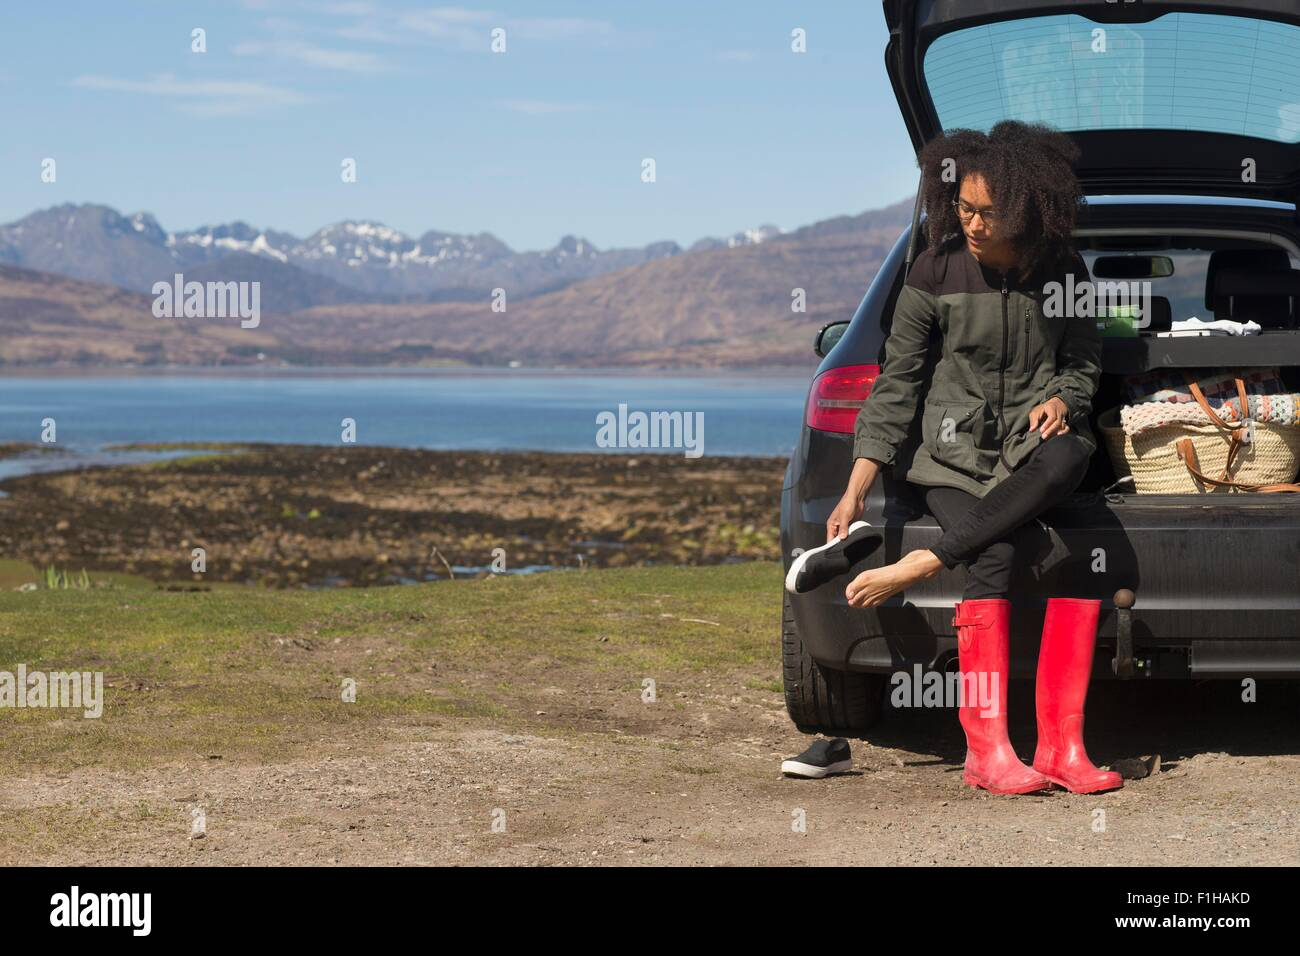 Mid adult woman sitting on car boot putting shoes on, Loch Eishort, Isle of Skye, Hebrides, Scotland - Stock Image